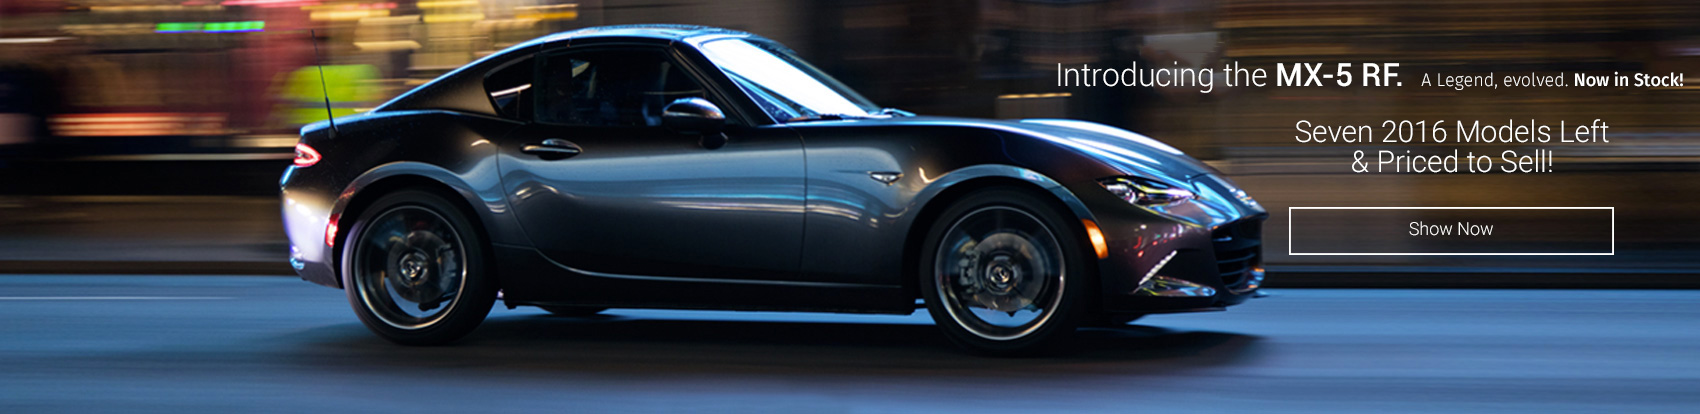 Get your Mazda MX-5 Today!